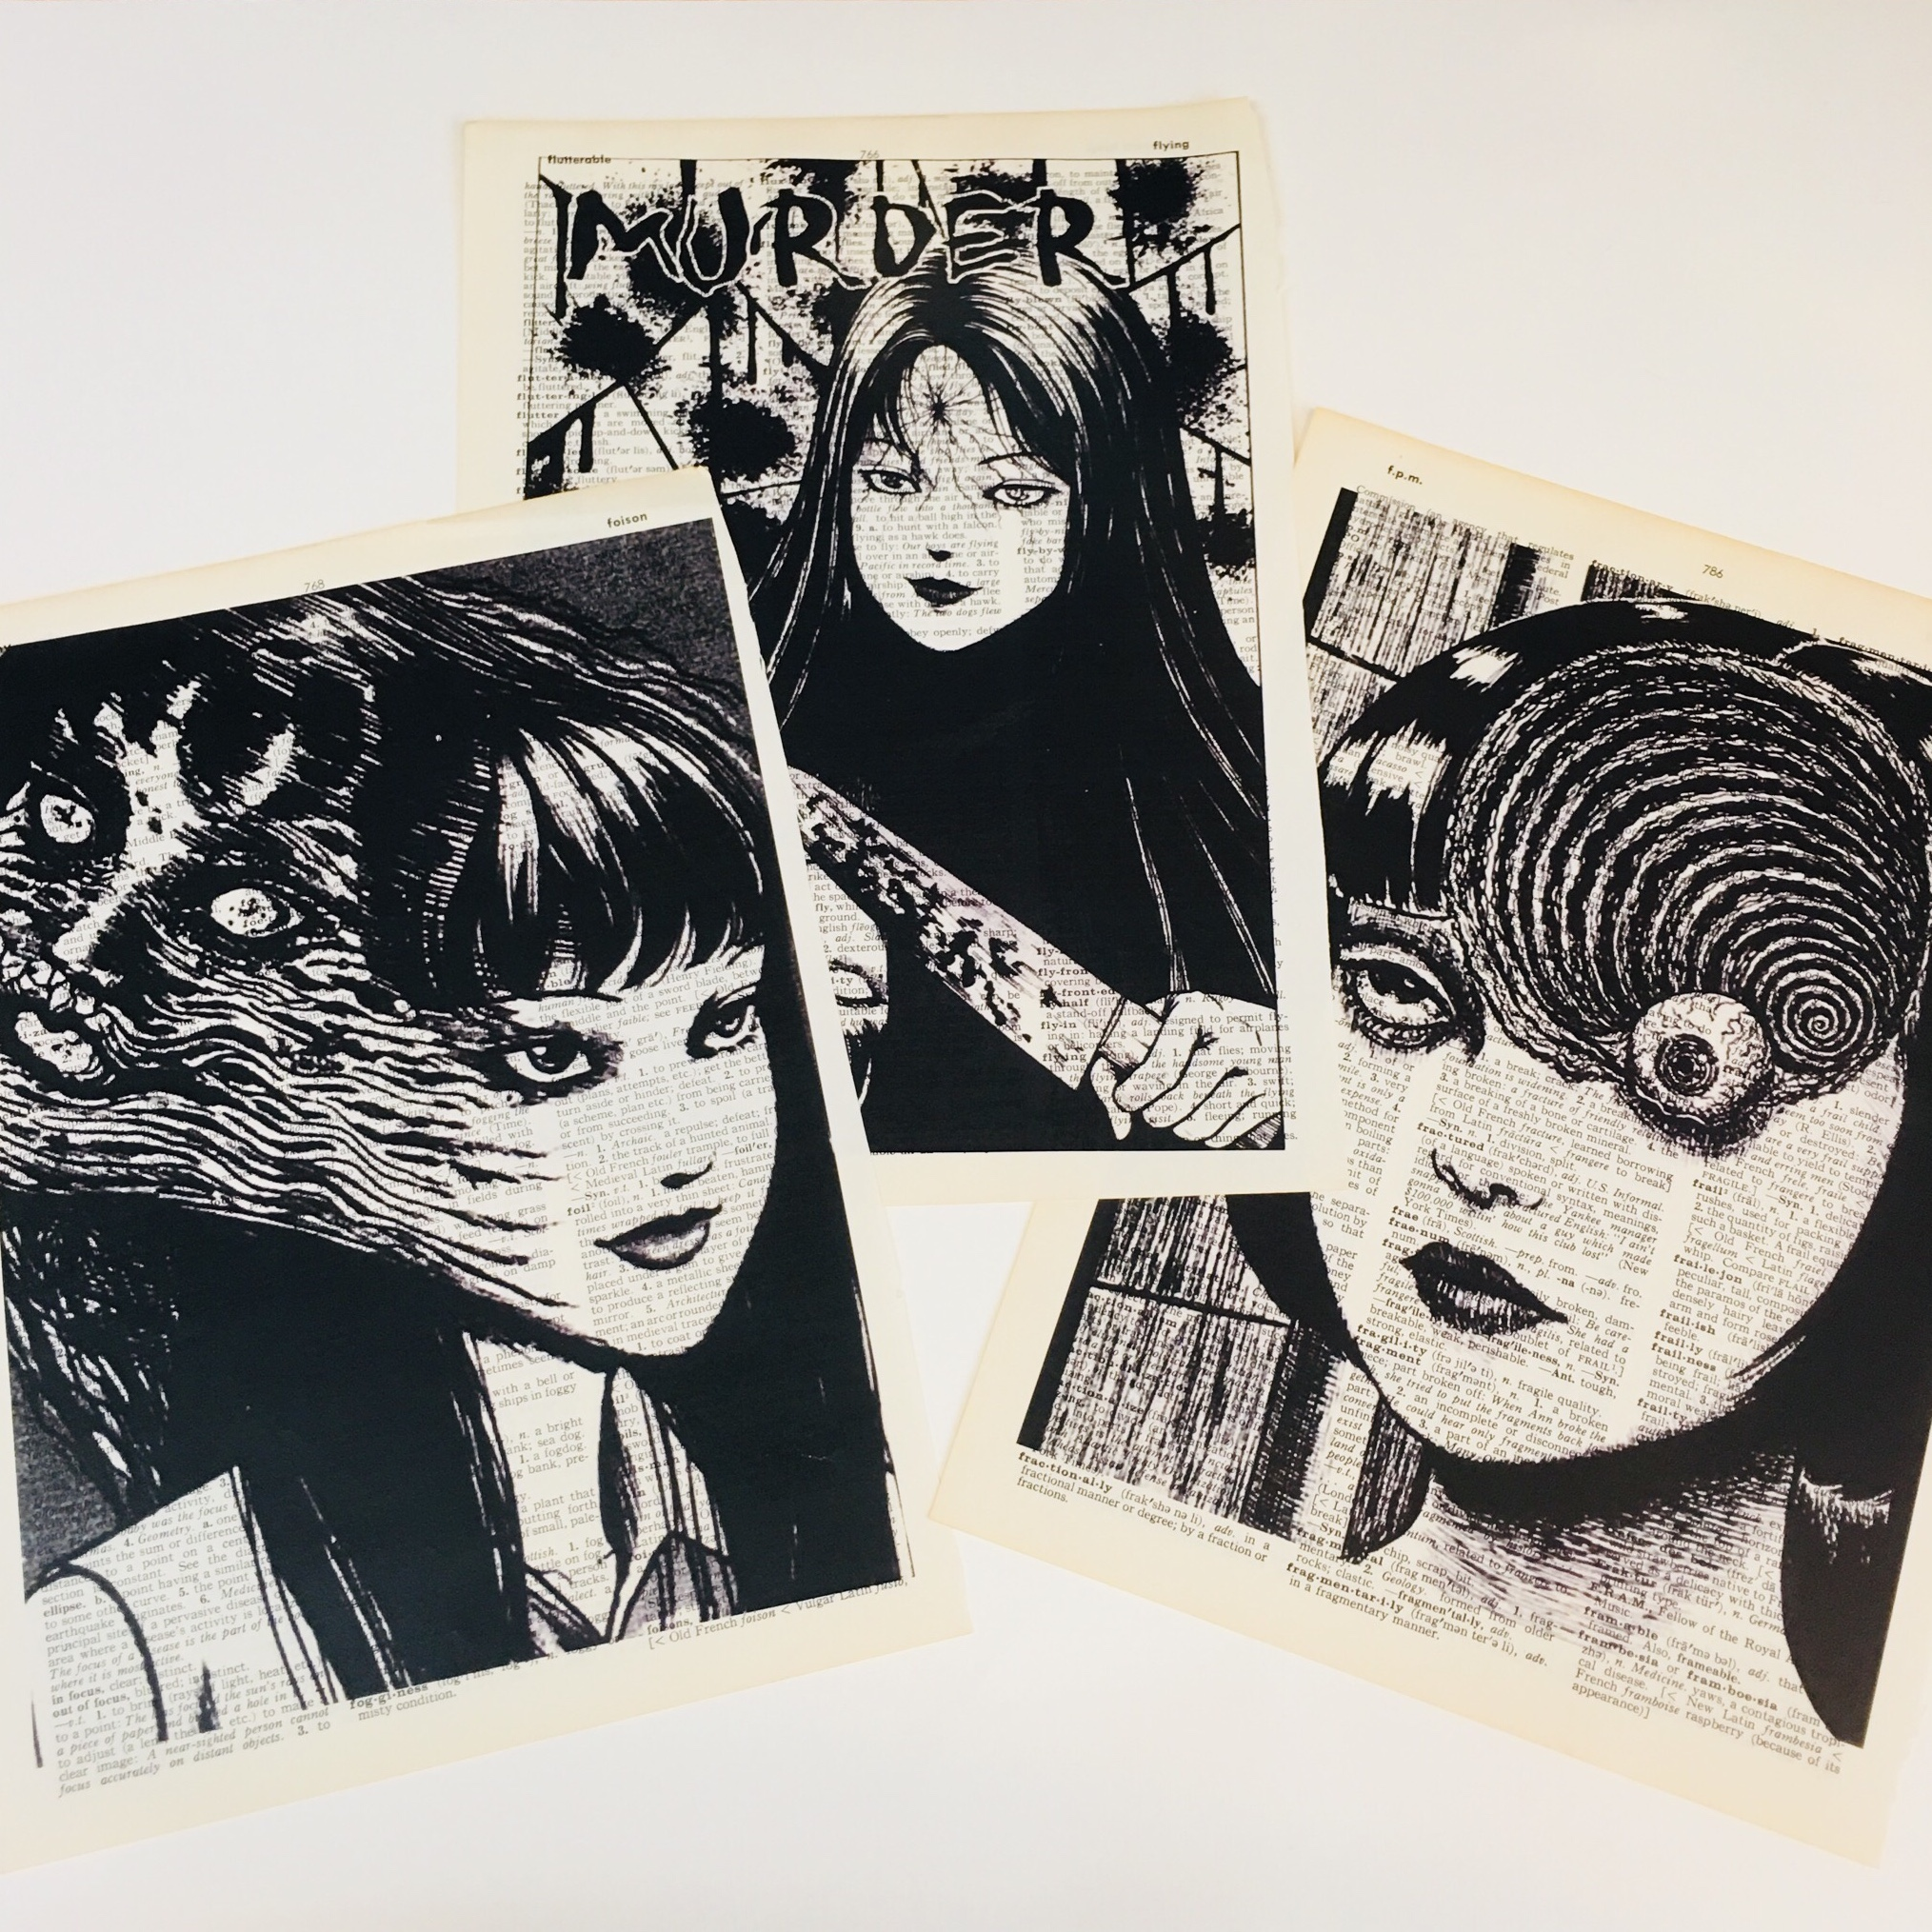 3 dictionary art print poster picture from junji ito